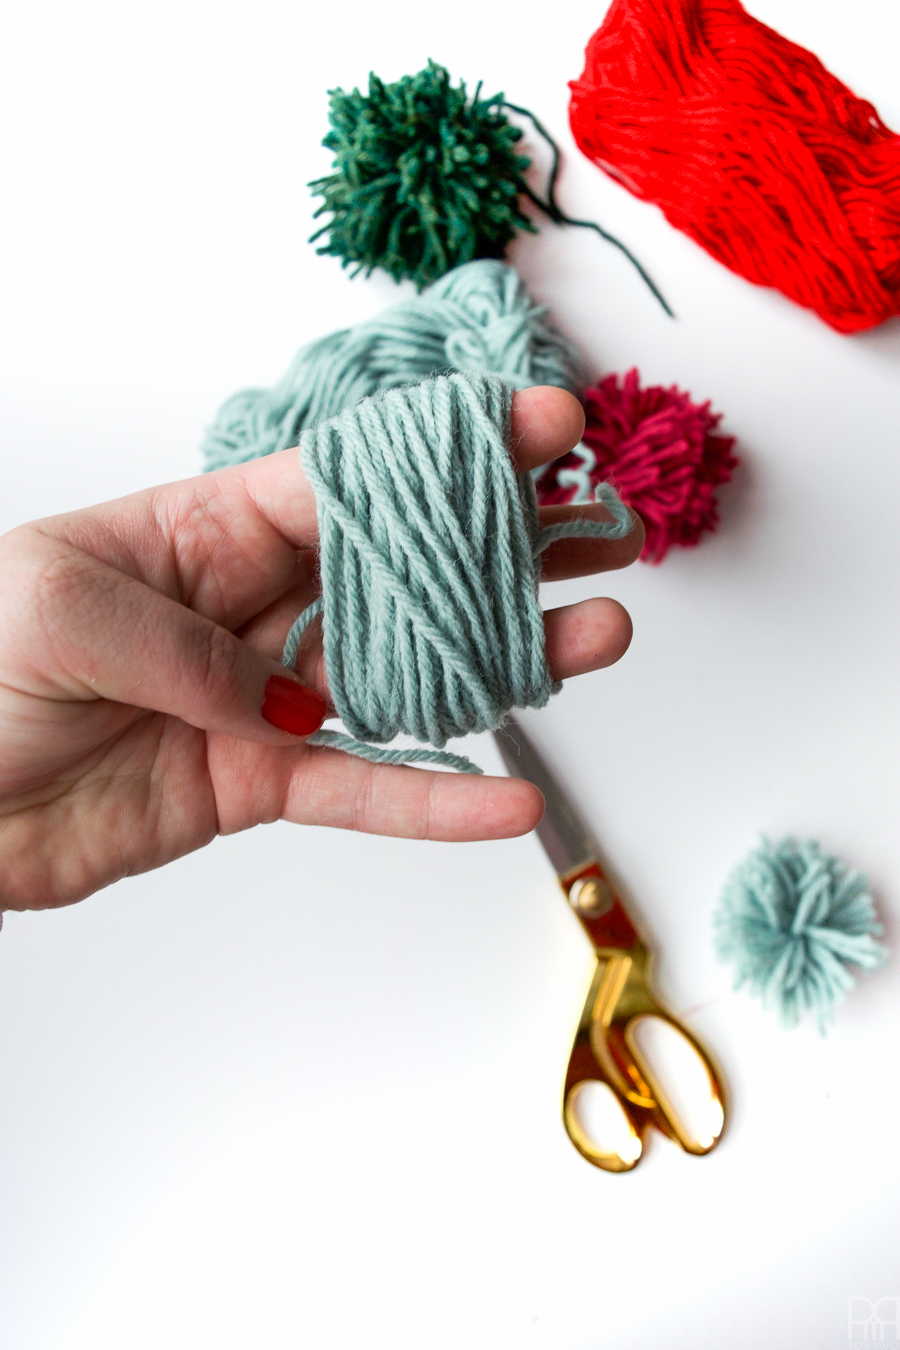 diy-pom-poms-and-tassels-20